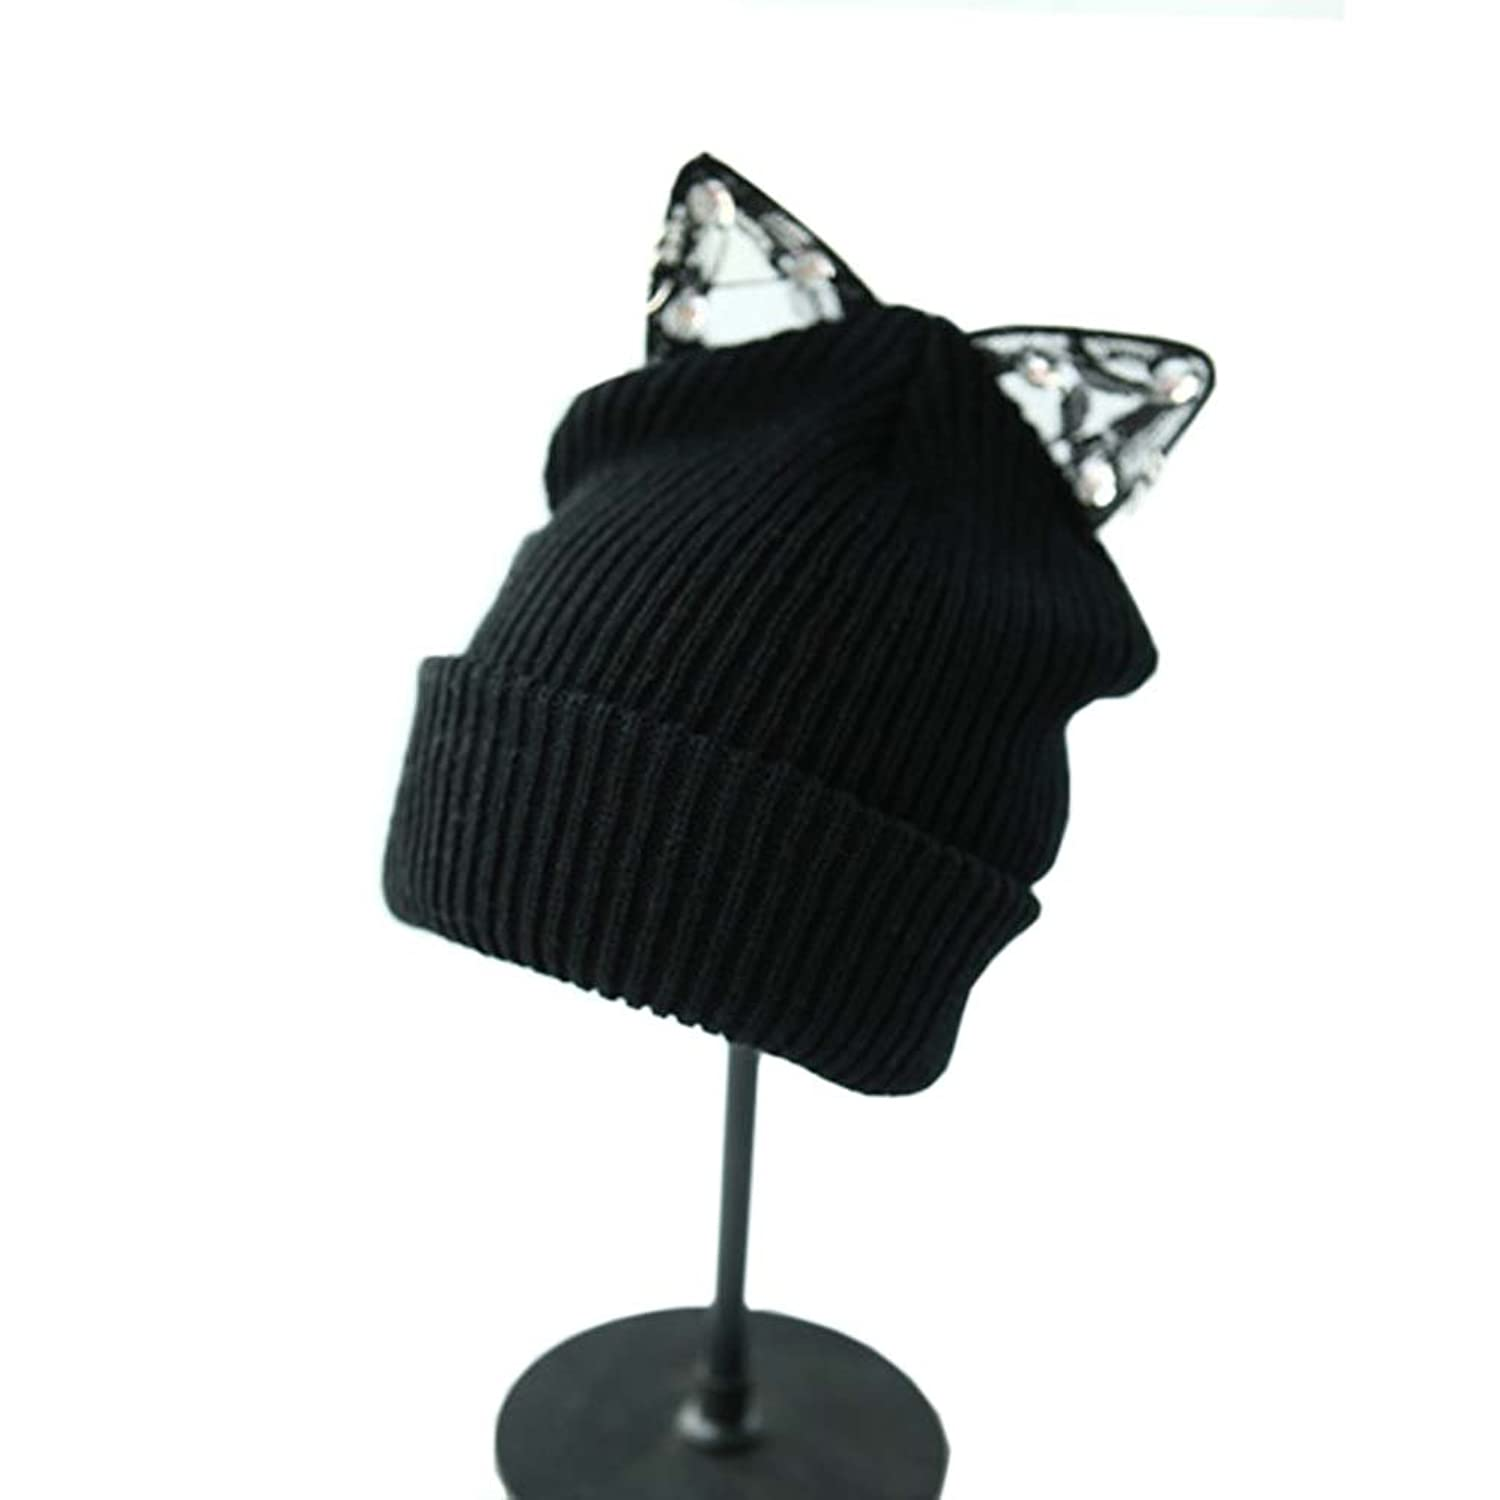 RULIU Women's Winter Fashion Lace Cat Ear Knit Slouchy Beanie Hat Ski Cap